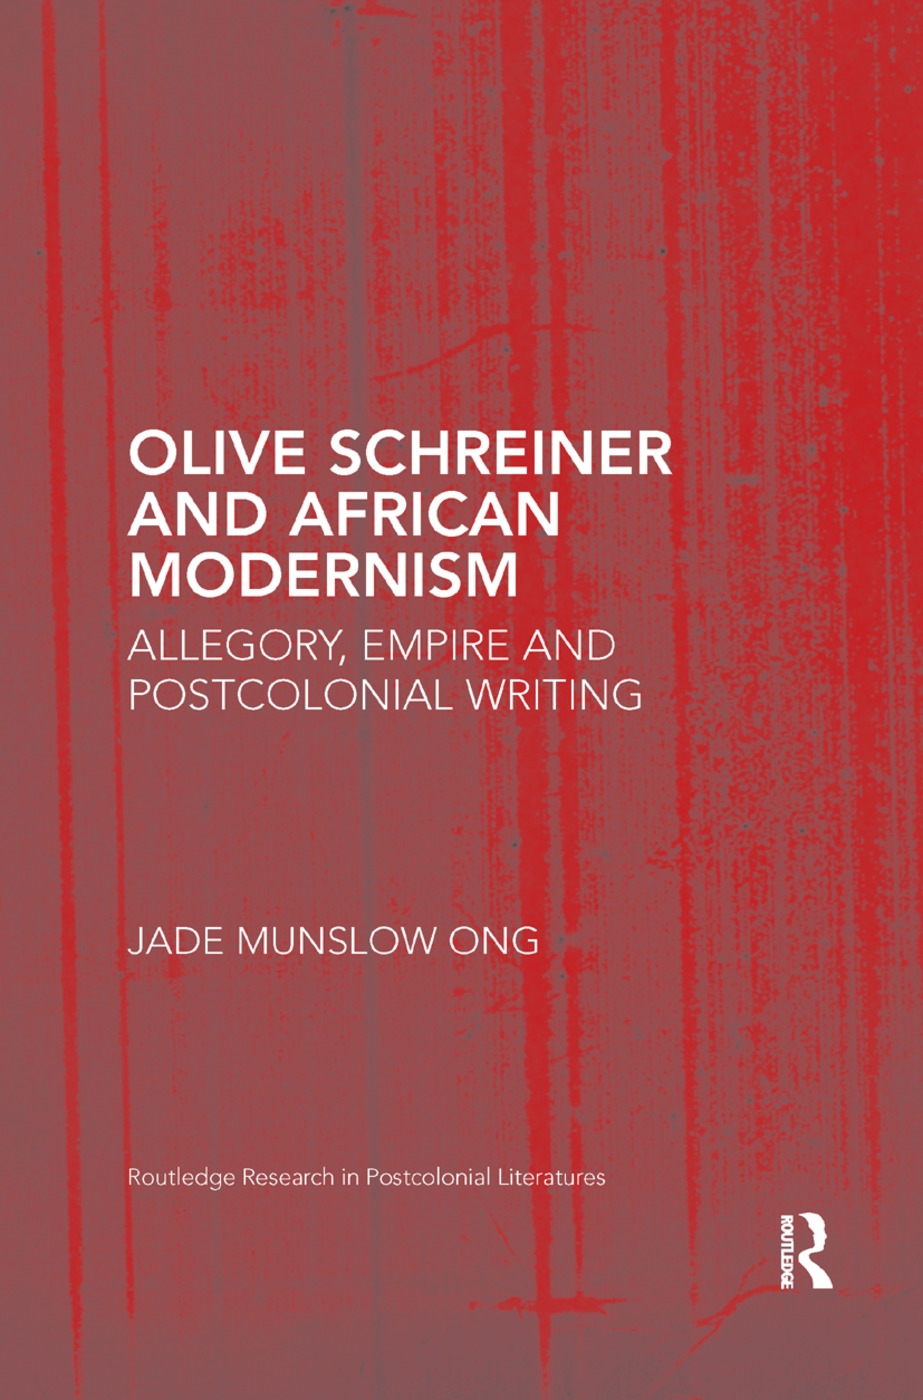 Olive Schreiner and African Modernism: Allegory, Empire and Postcolonial Writing book cover